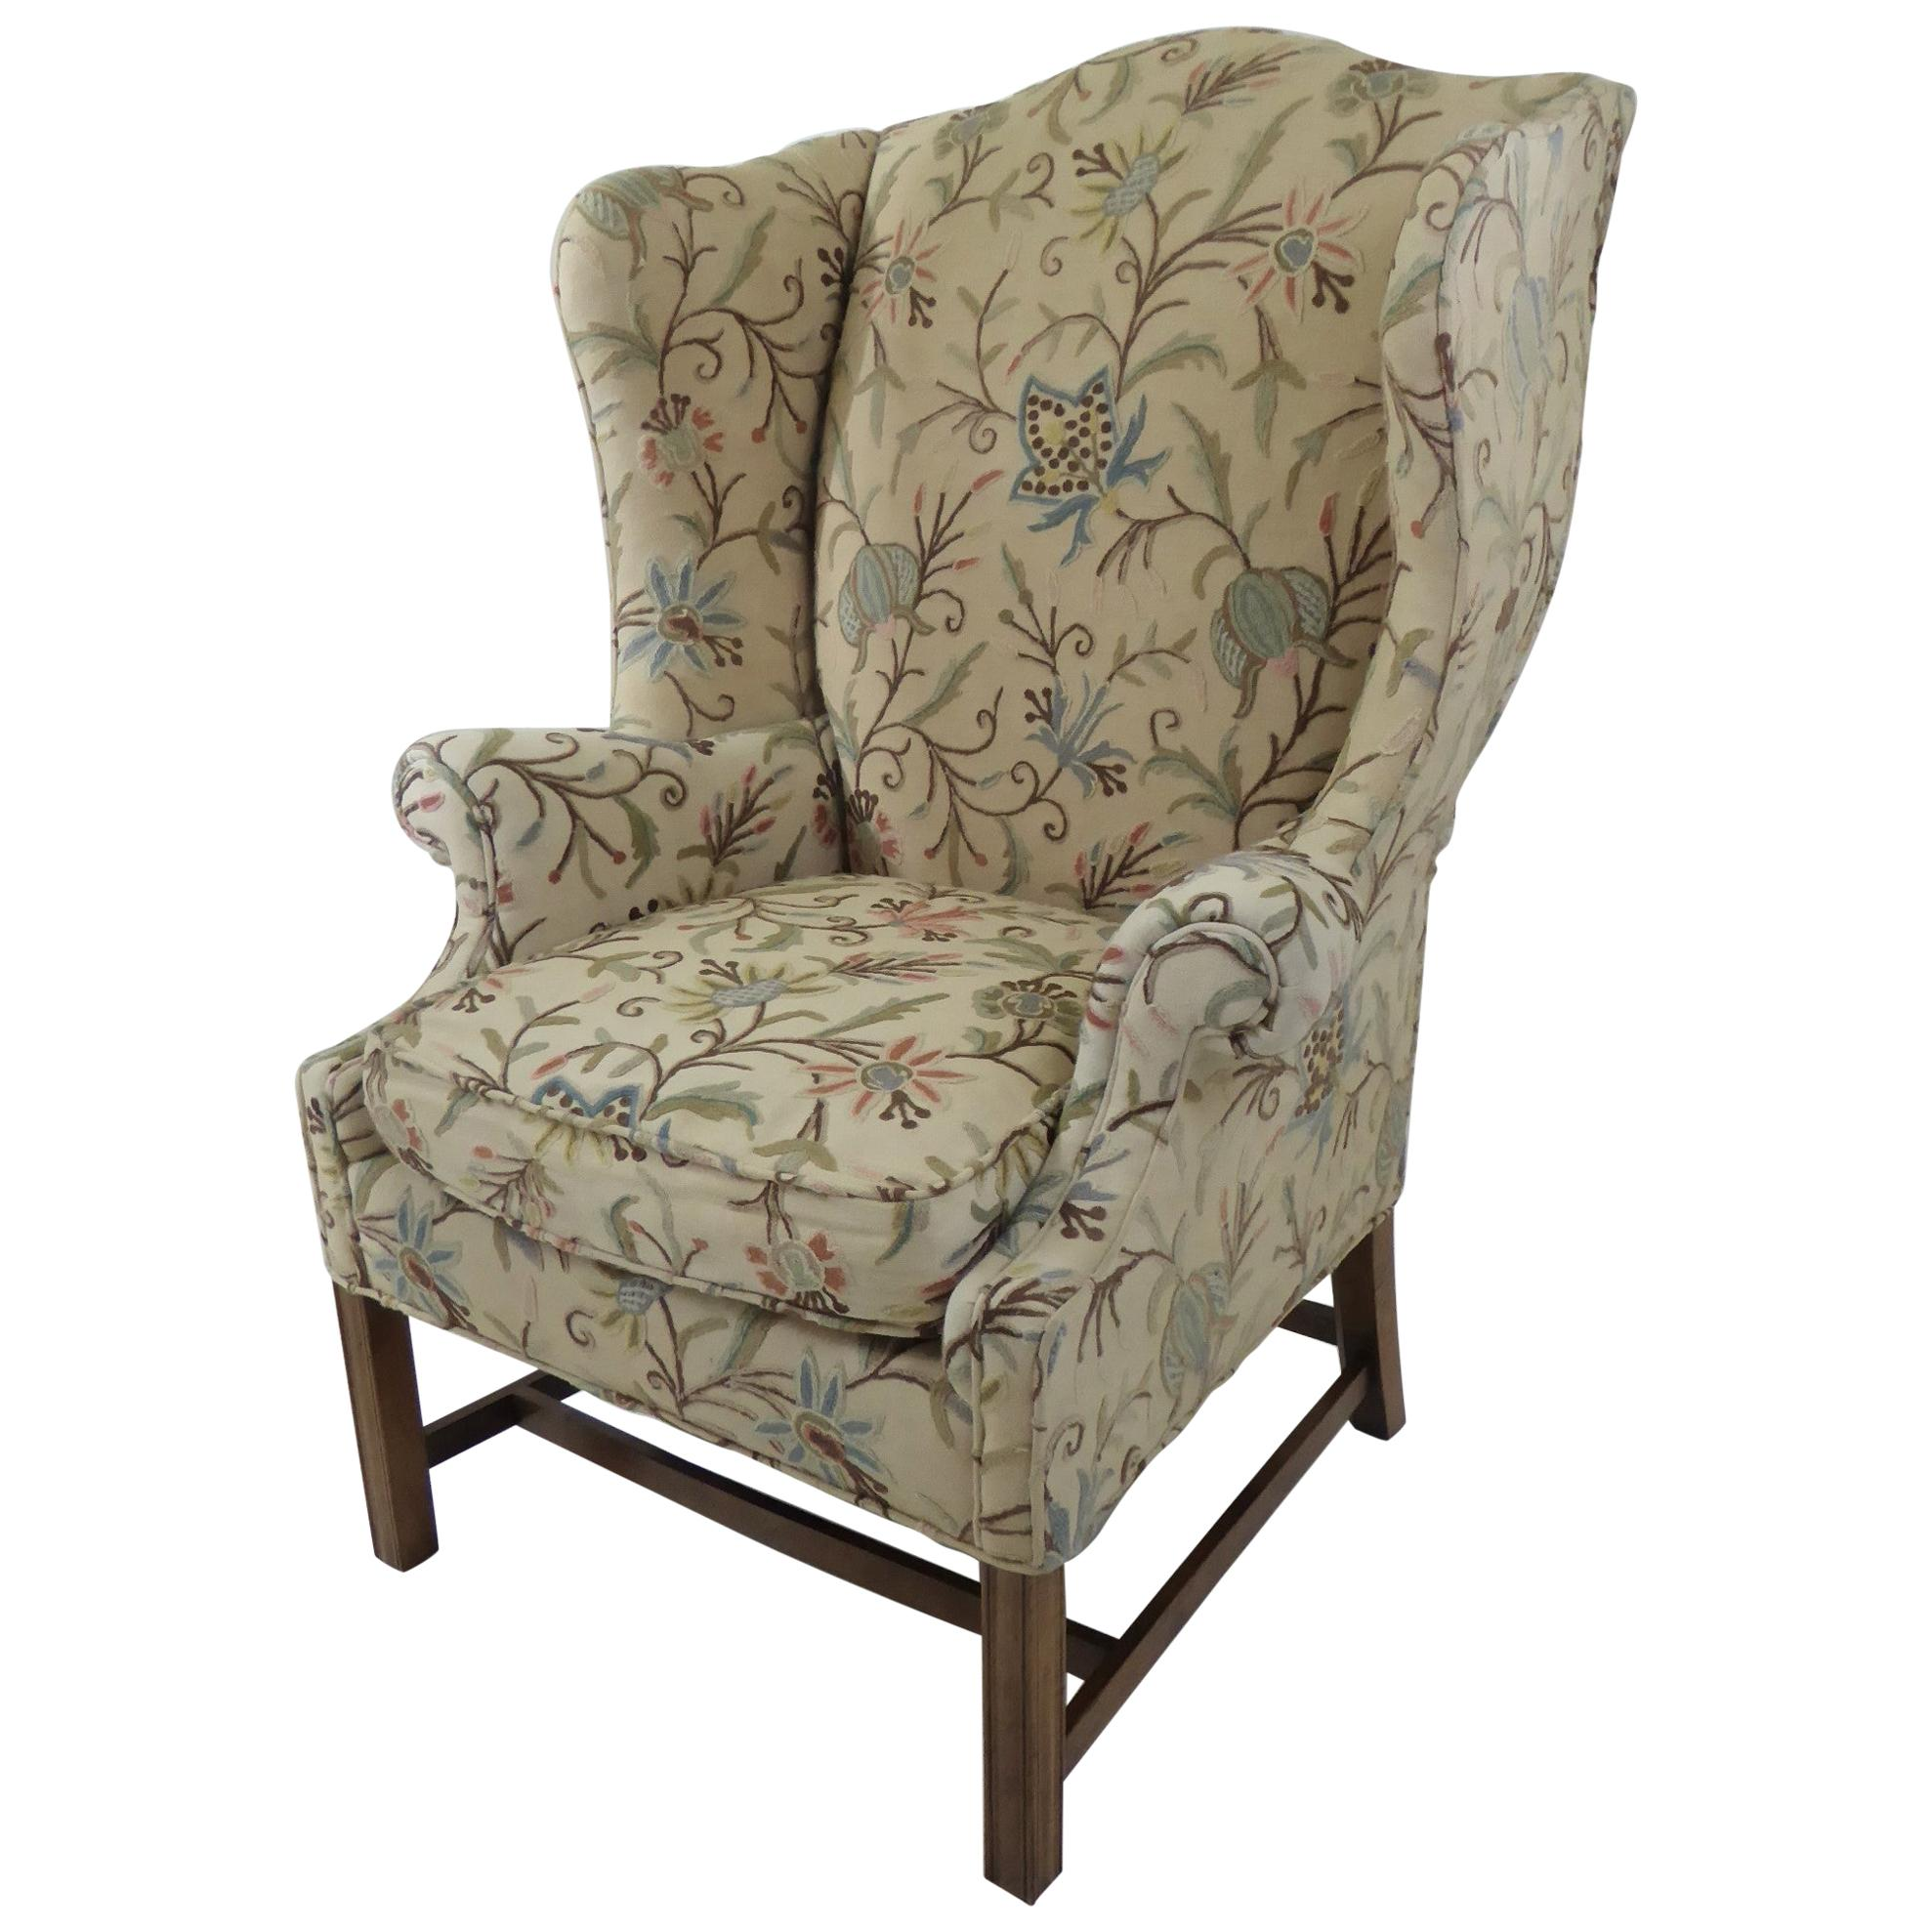 Modern Baker Chippendale Style Wingchair Crewel Stitched Fabric, 1950s